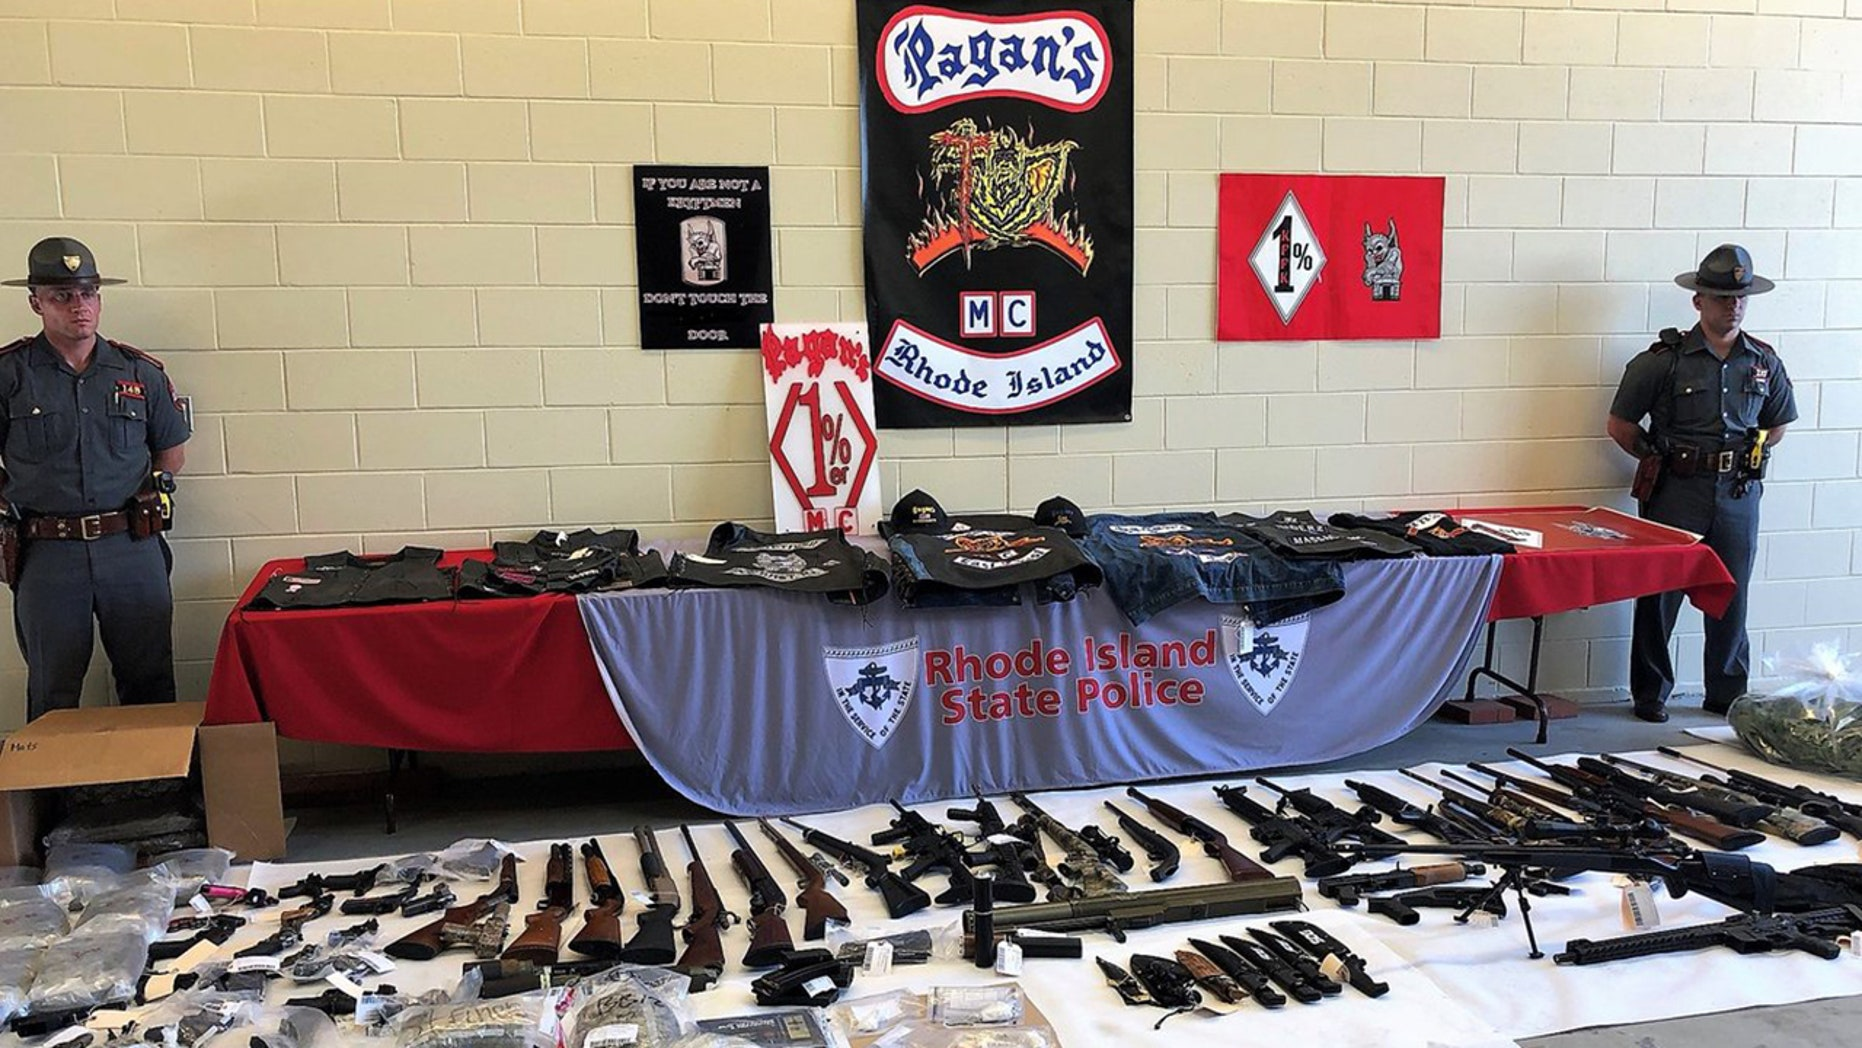 Authorities on Wednesday arrested 50 members of two rival biker gangs in Rhode Island, seizing 53 illegal guns and large quantities of narcotics.